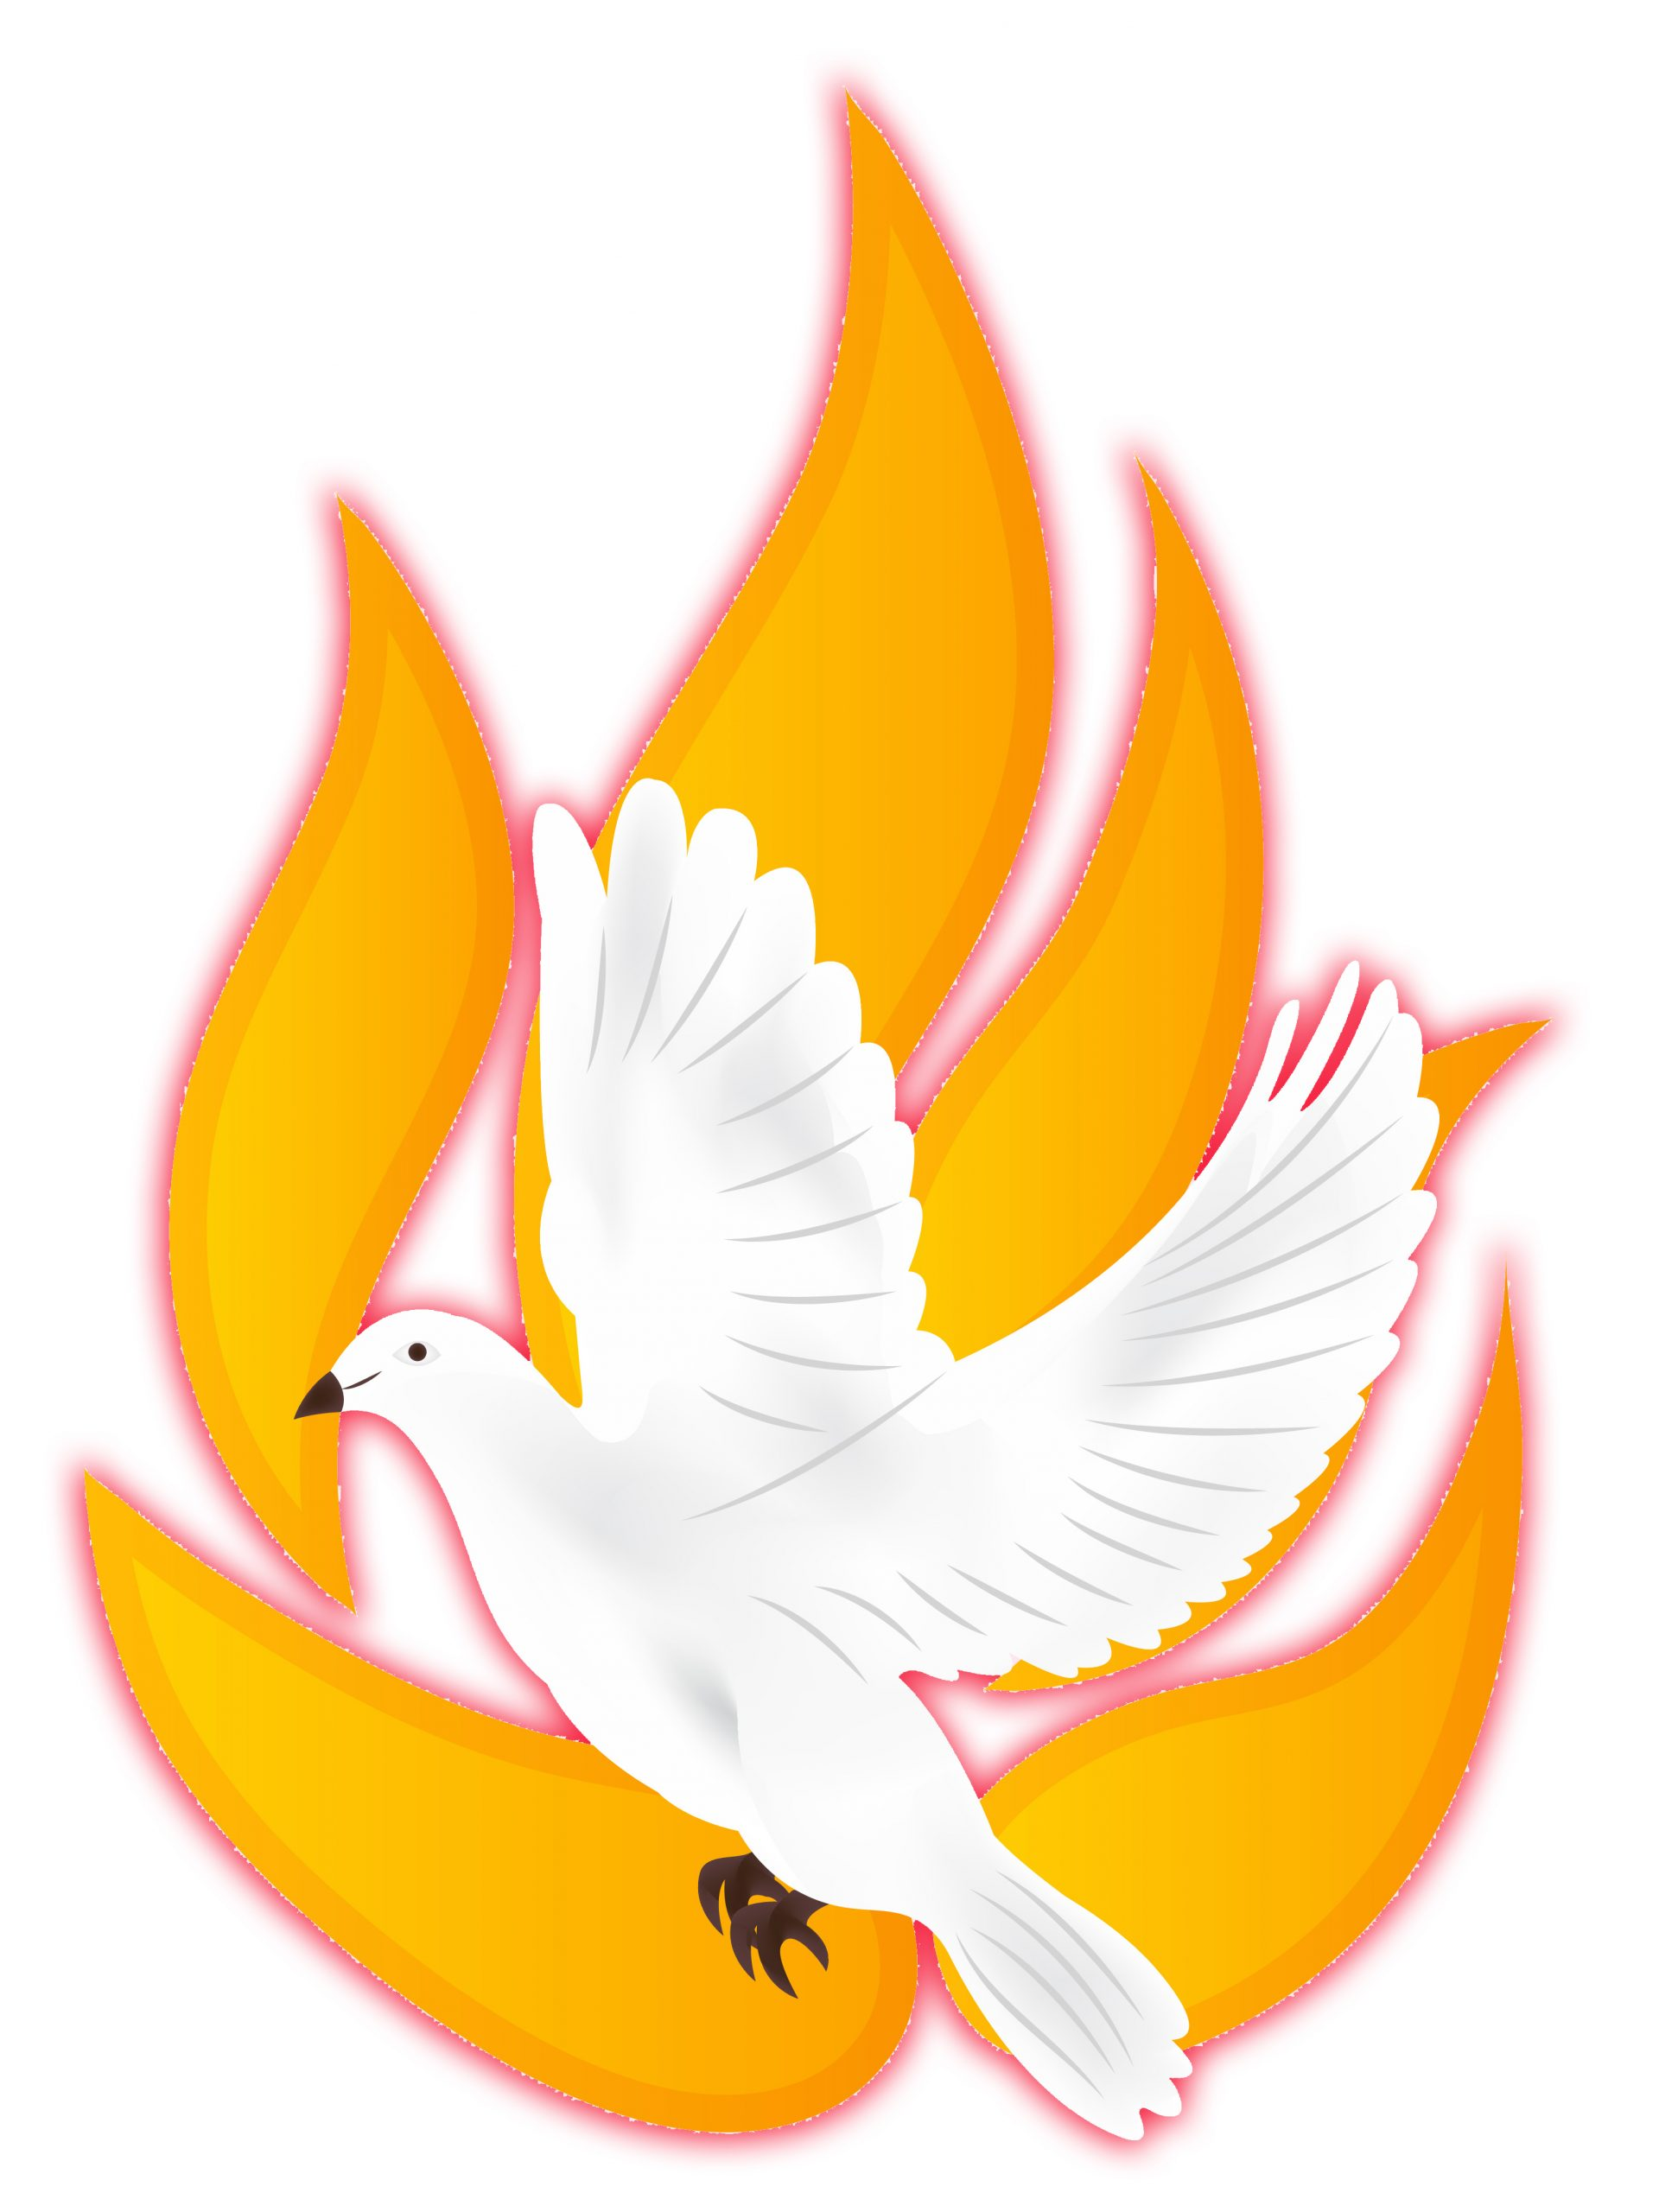 Flames and Dove Pentecost image